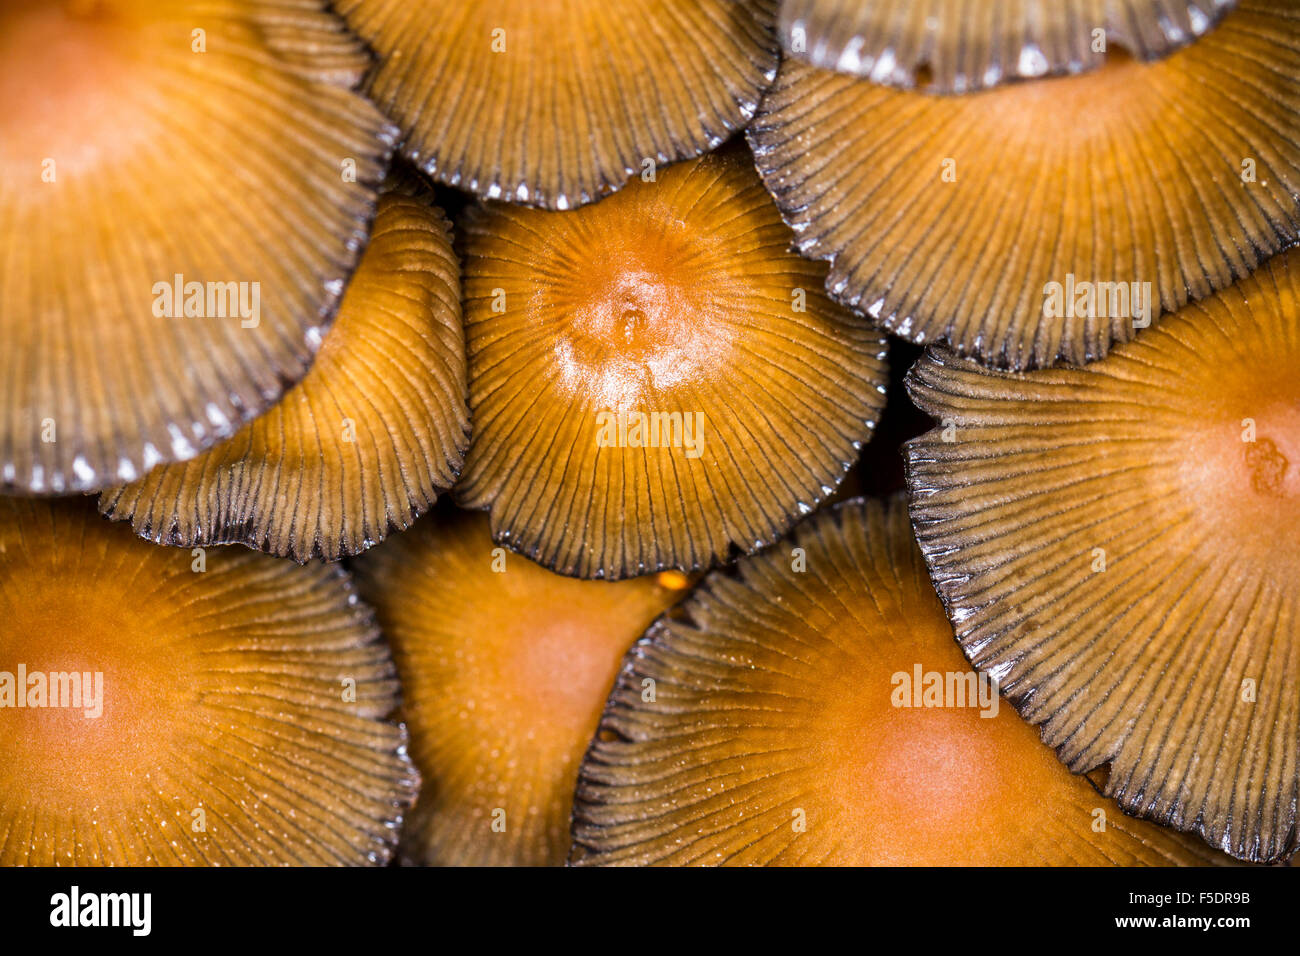 Landscape image of the tops of a cluster of woodland fungi/fungus packed together tightly - Stock Image